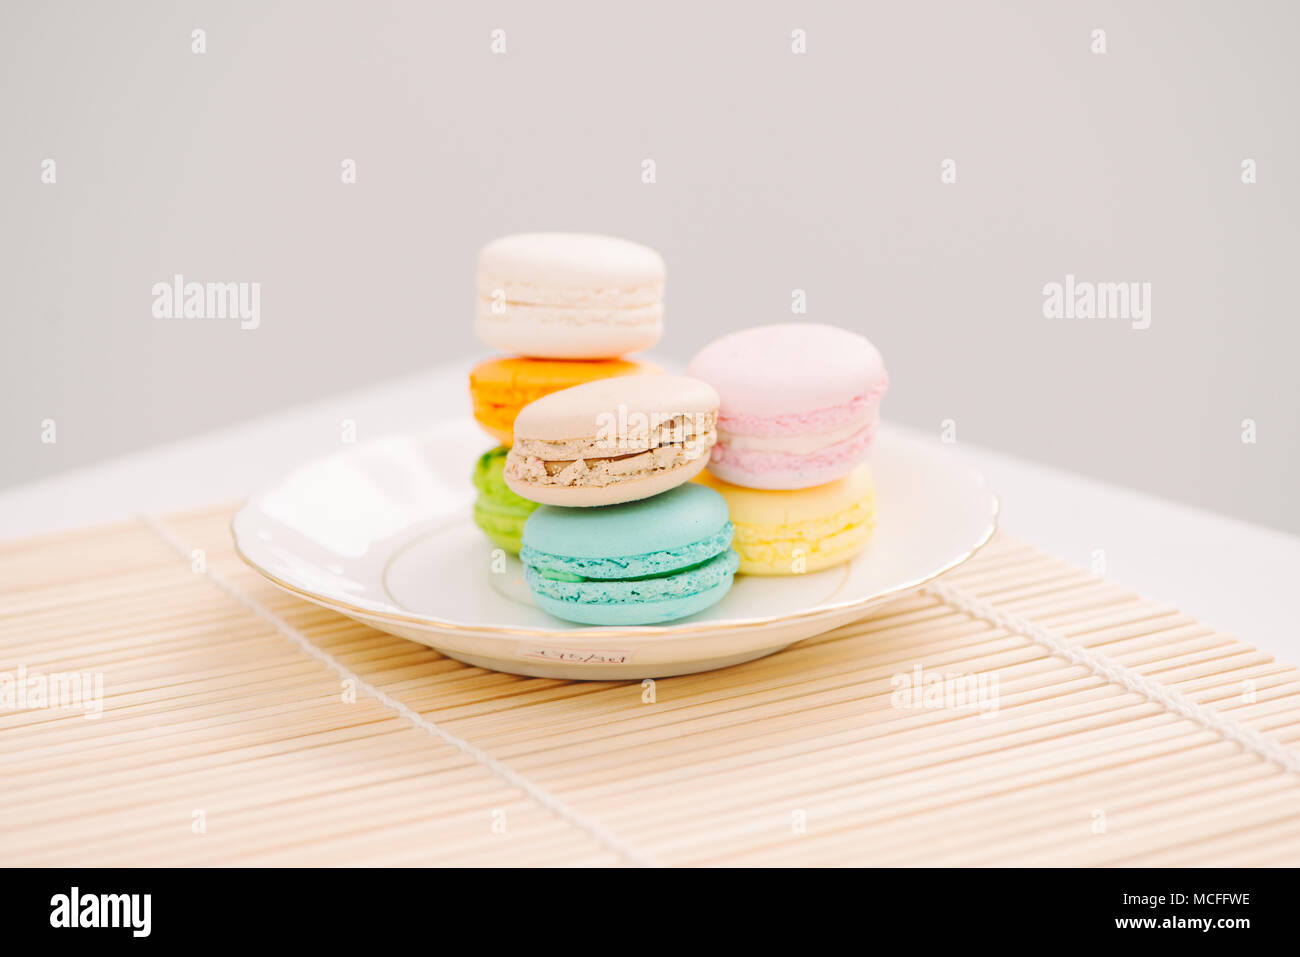 Delicious french dessert. Colorful pastel cake macaron or macaroon - Stock Image